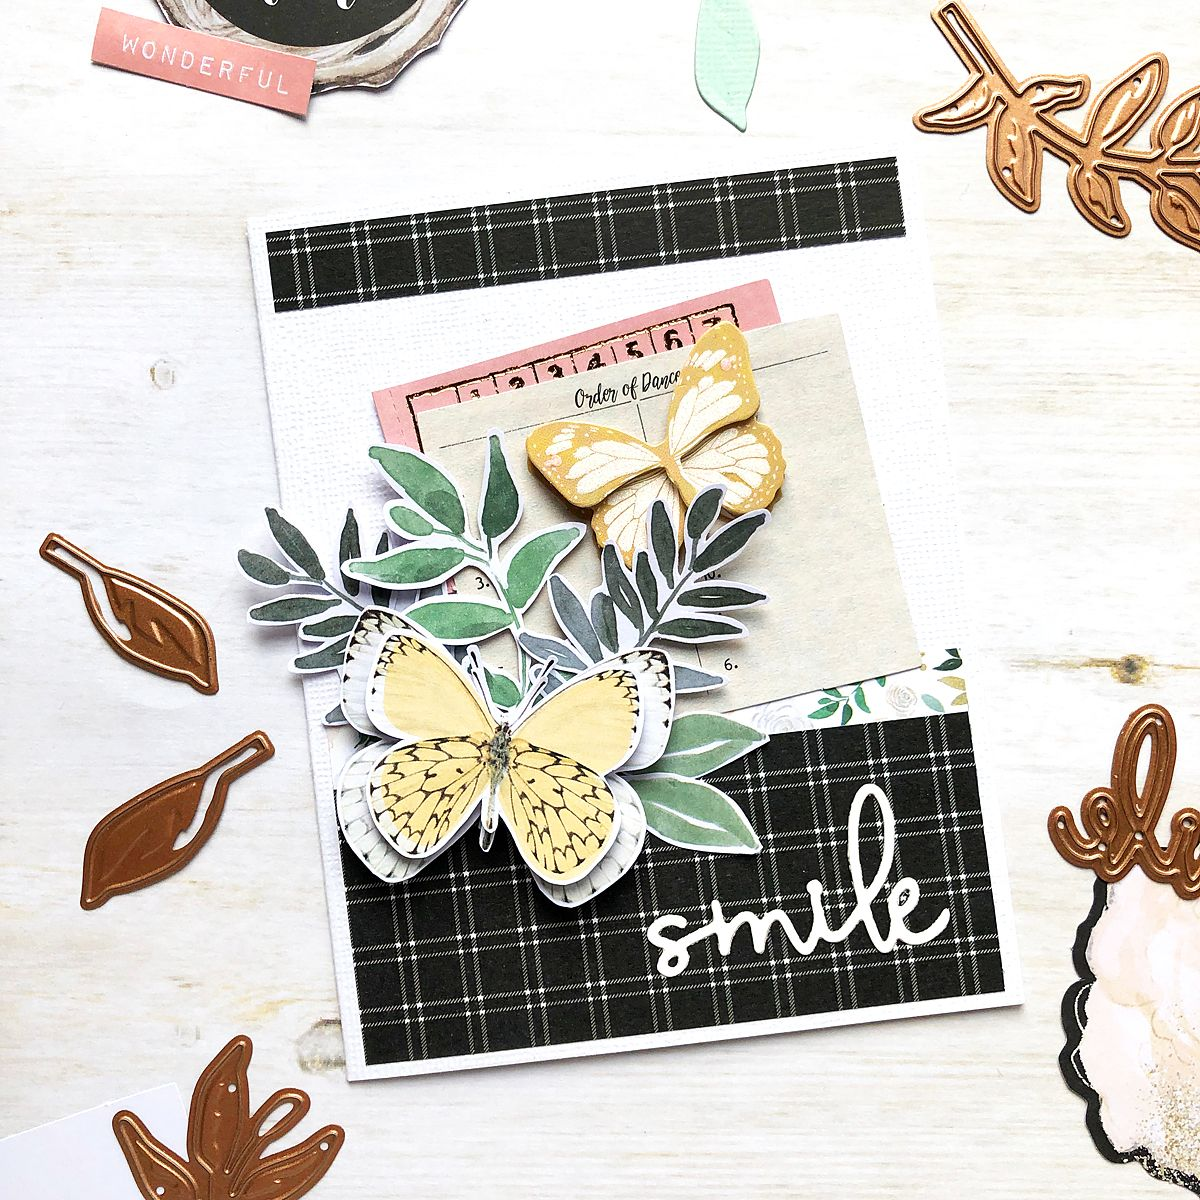 Spellbinders – May 2019 Card Kit of the Month #cardkit